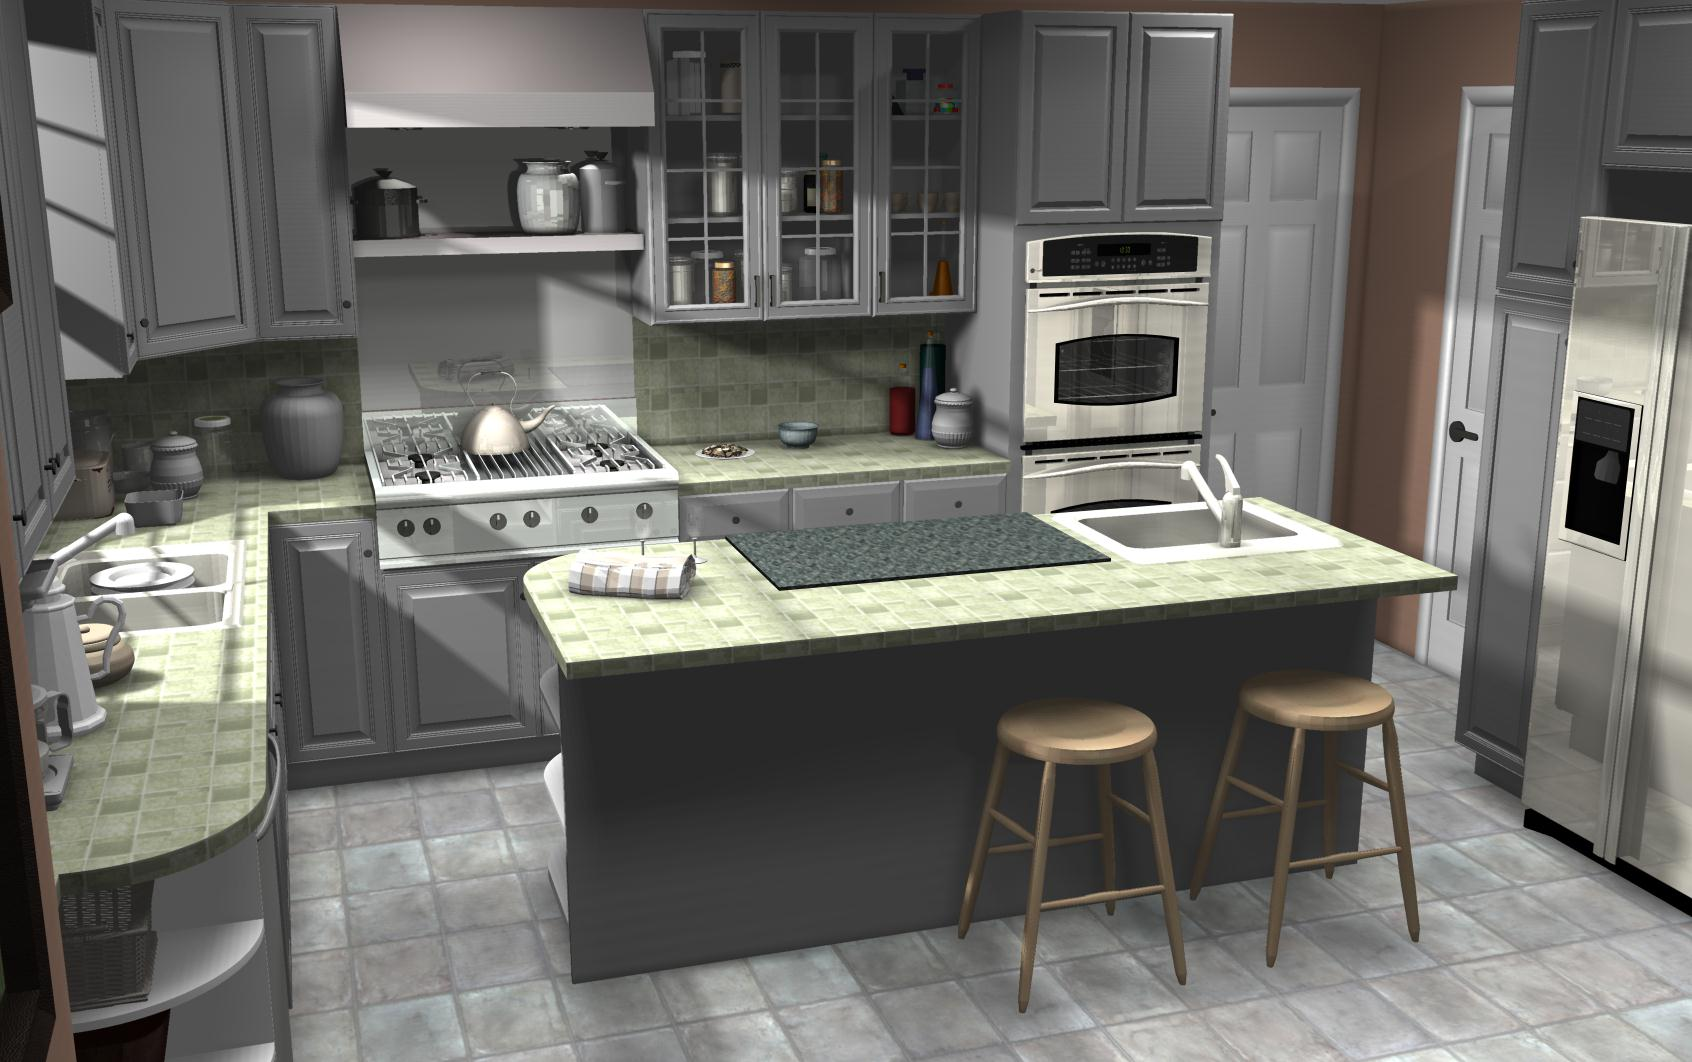 online kitchen design ikea ikdo the ikea kitchen design page 2 115